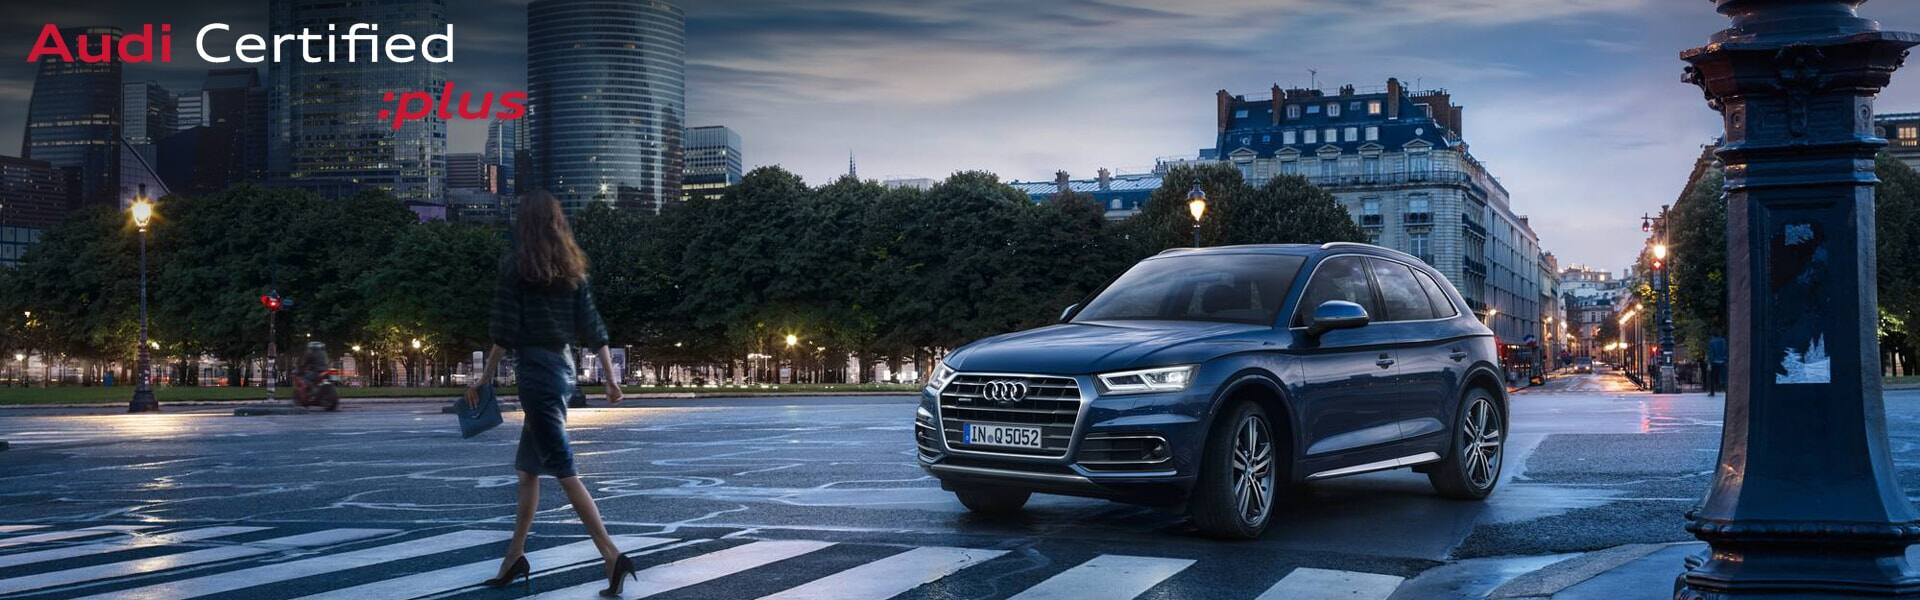 pre-owned vehicle specials offers   audi midtown toronto, on m2j 4r2